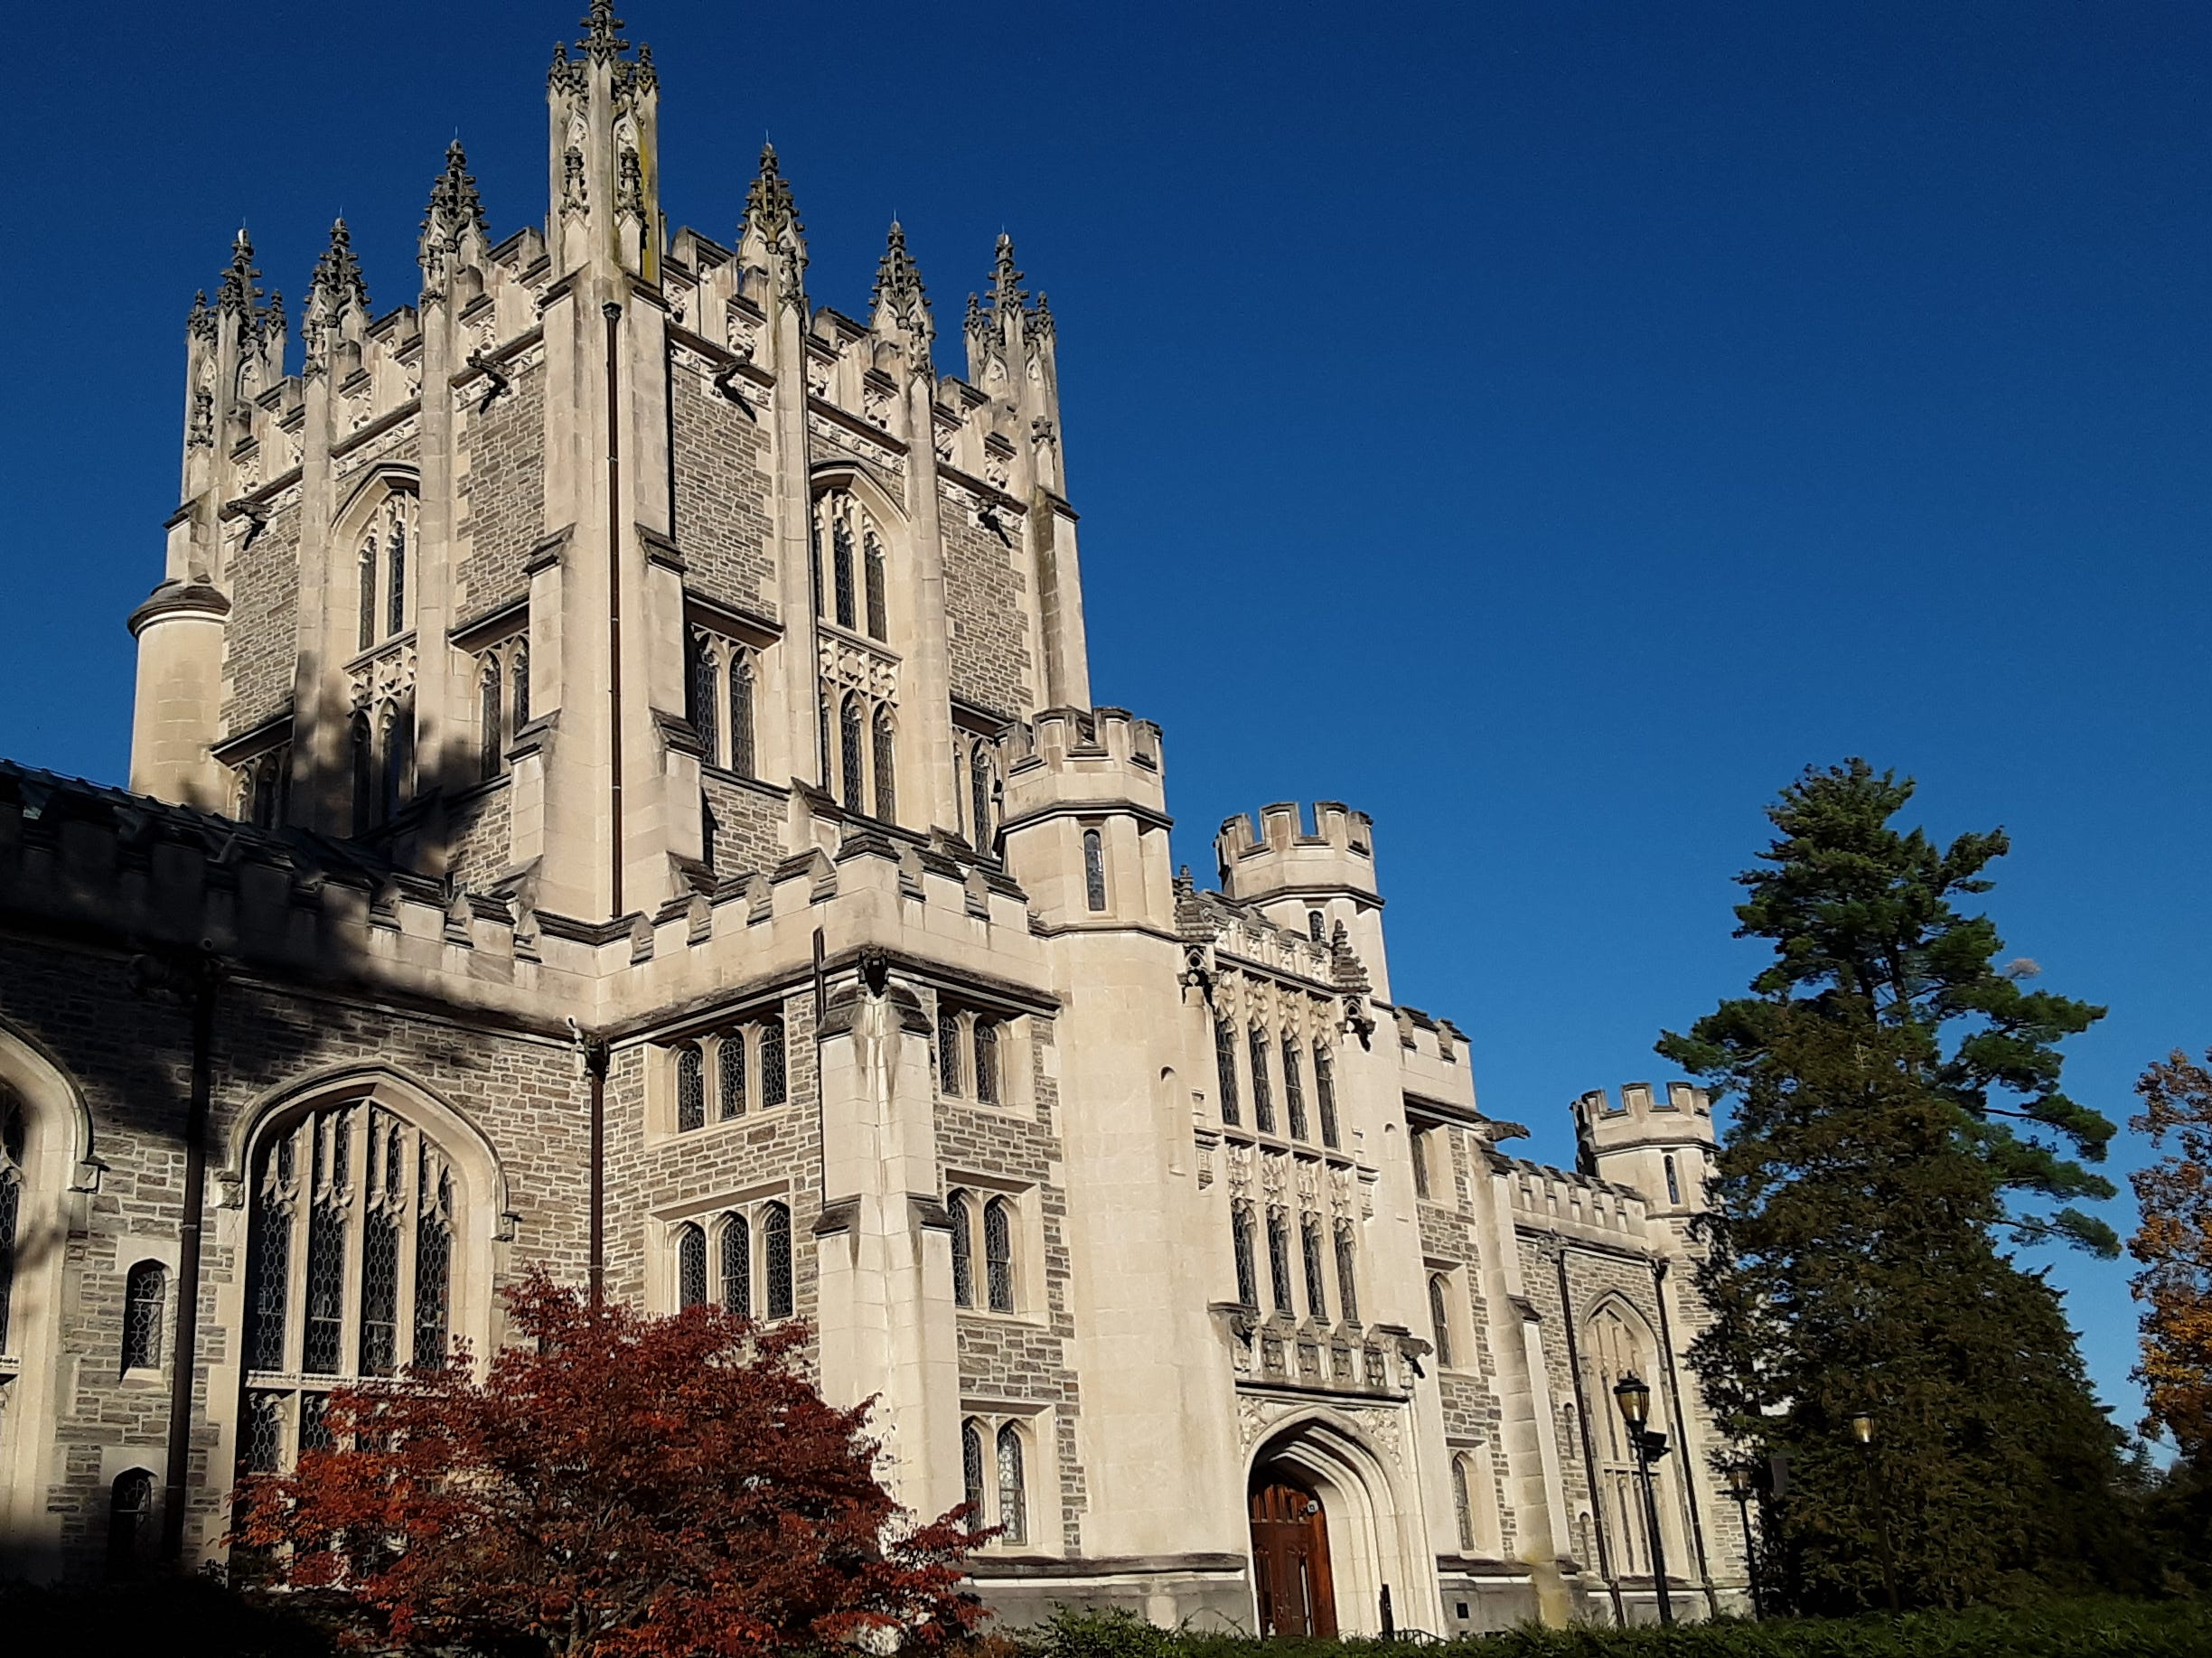 Vassar College Library in morning light with clear blue sky @jimberetta2